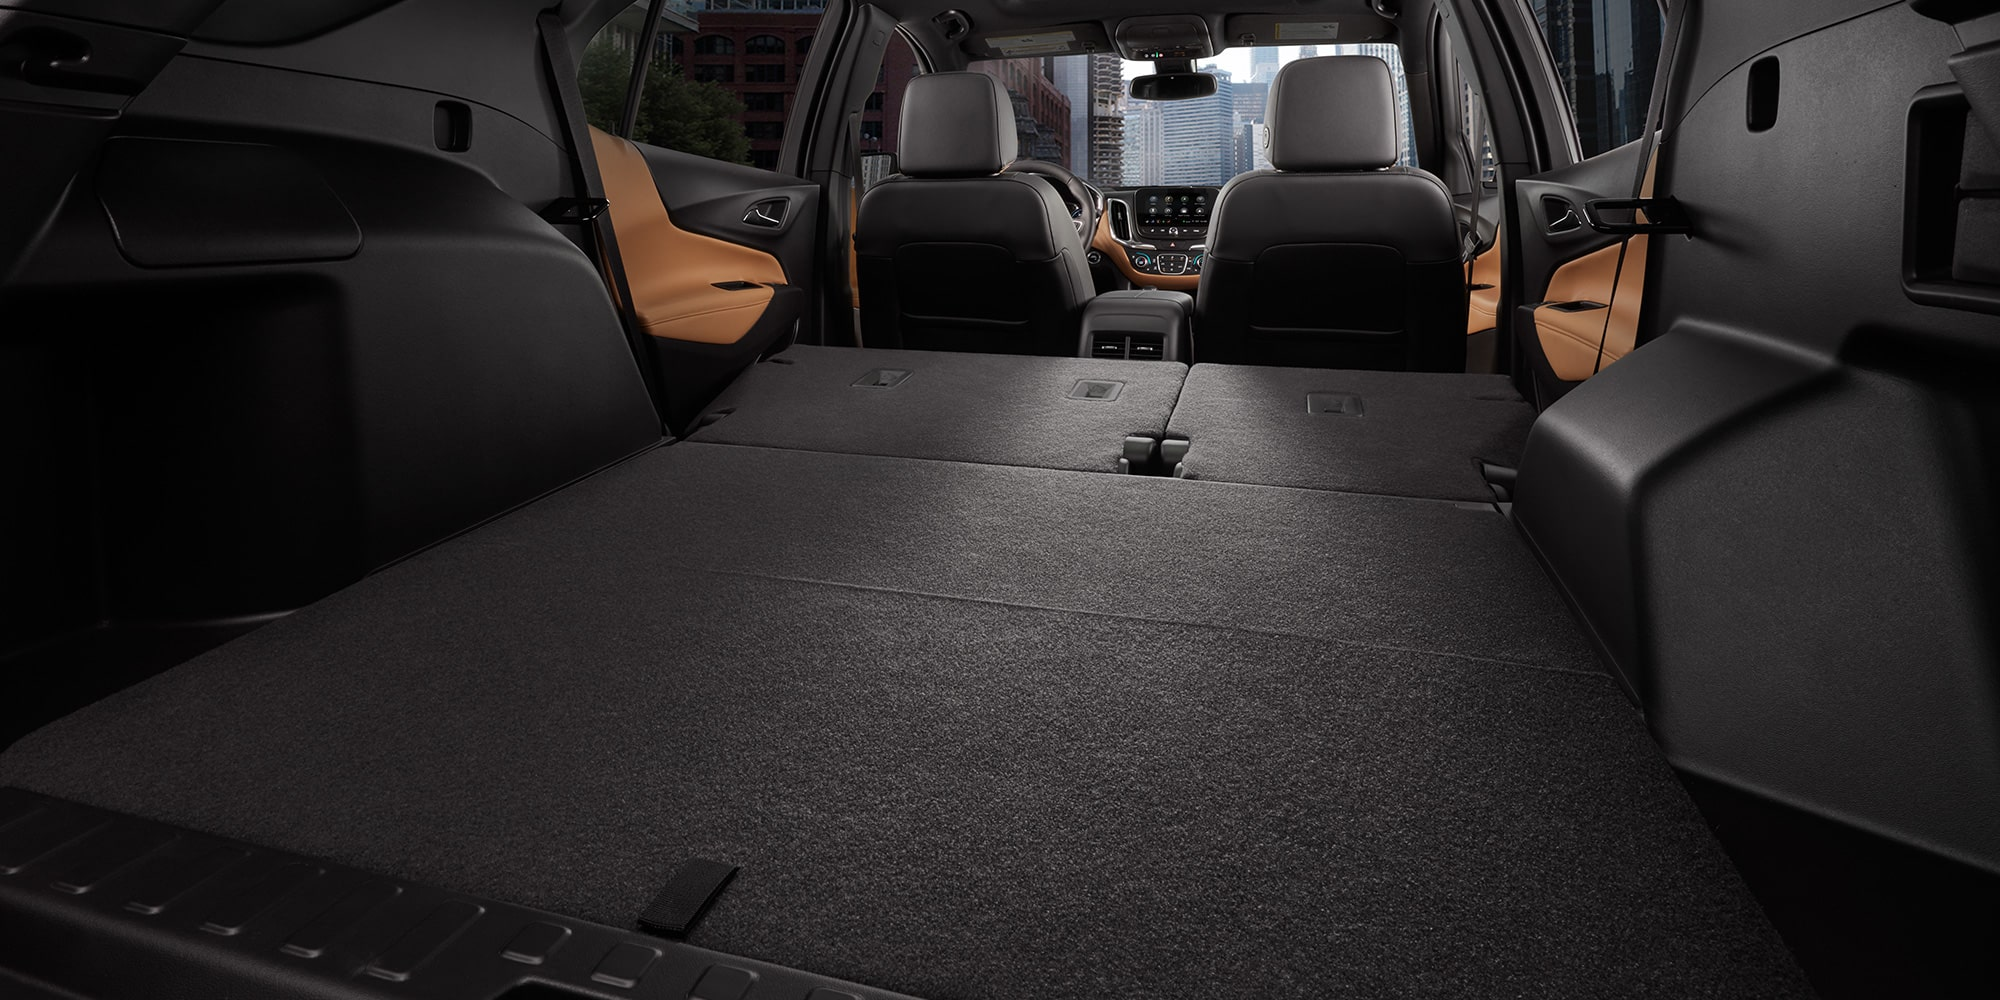 Beautiful 2019 Equinox Small SUV Interior Photo Of The Cargo Space With Rear Seats  Folded